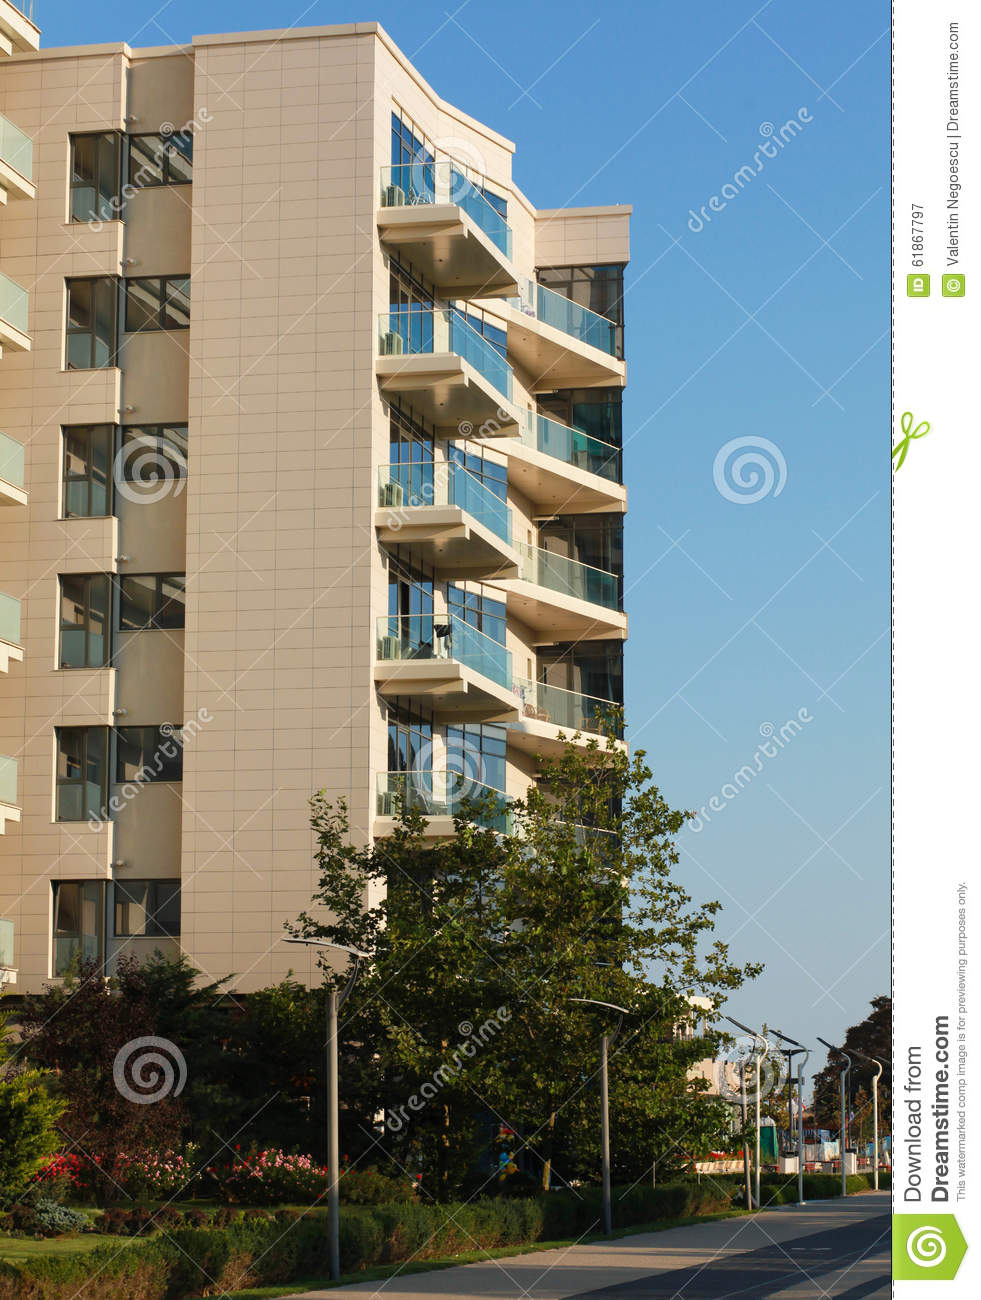 Open Balconies Modern Apartment Building Stock Image